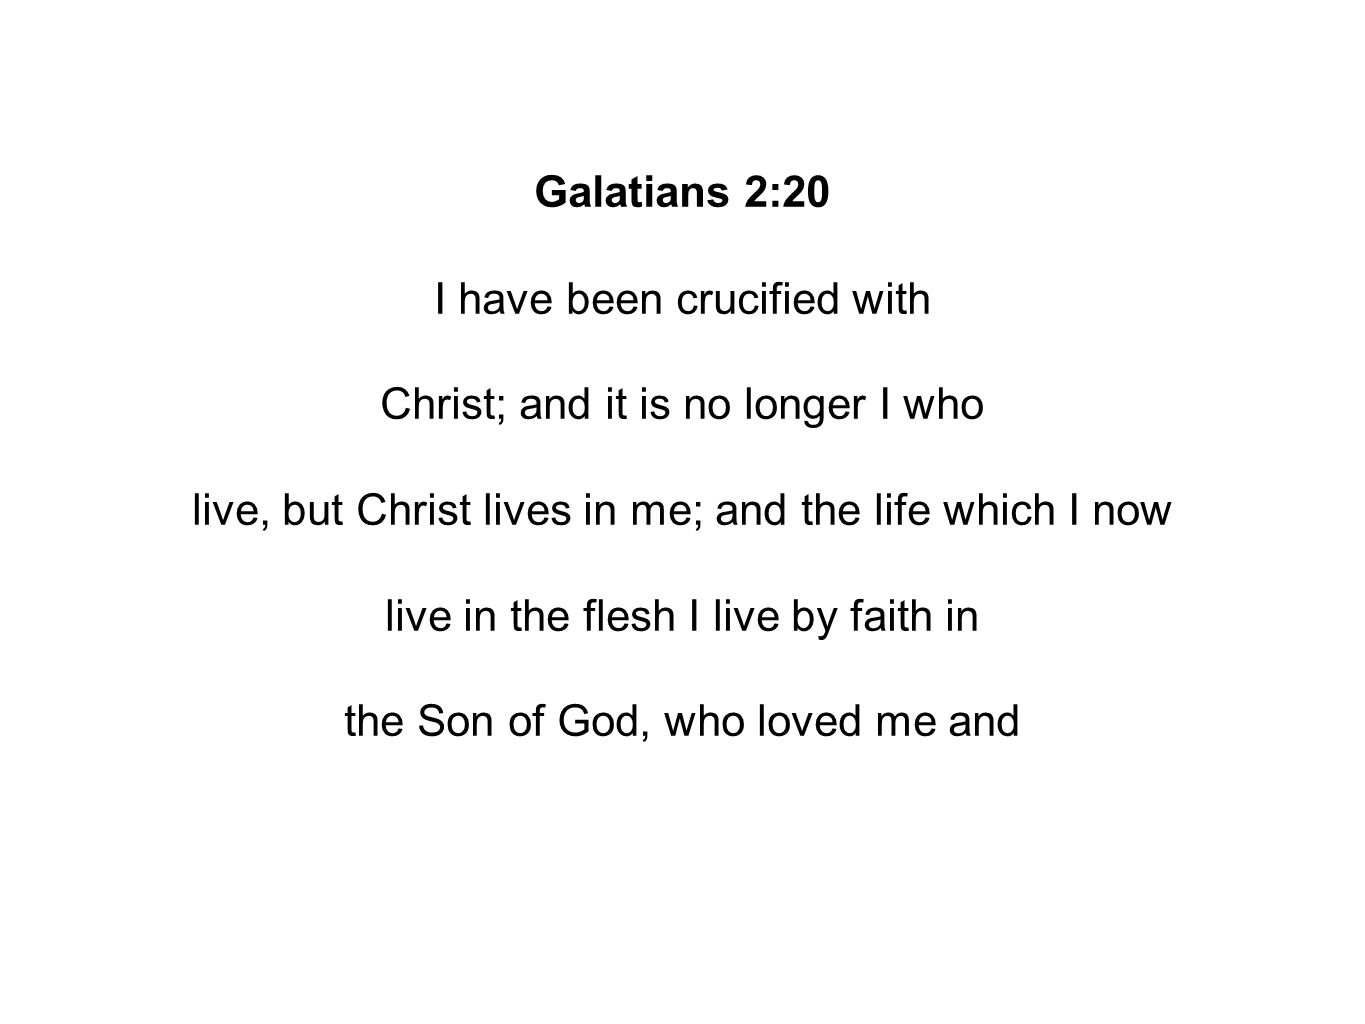 Galatians 2:20 I have been crucified with Christ; and it is no longer I who live, but Christ lives in me; and the life which I now live in the flesh I live by faith in the Son of God, who loved me and